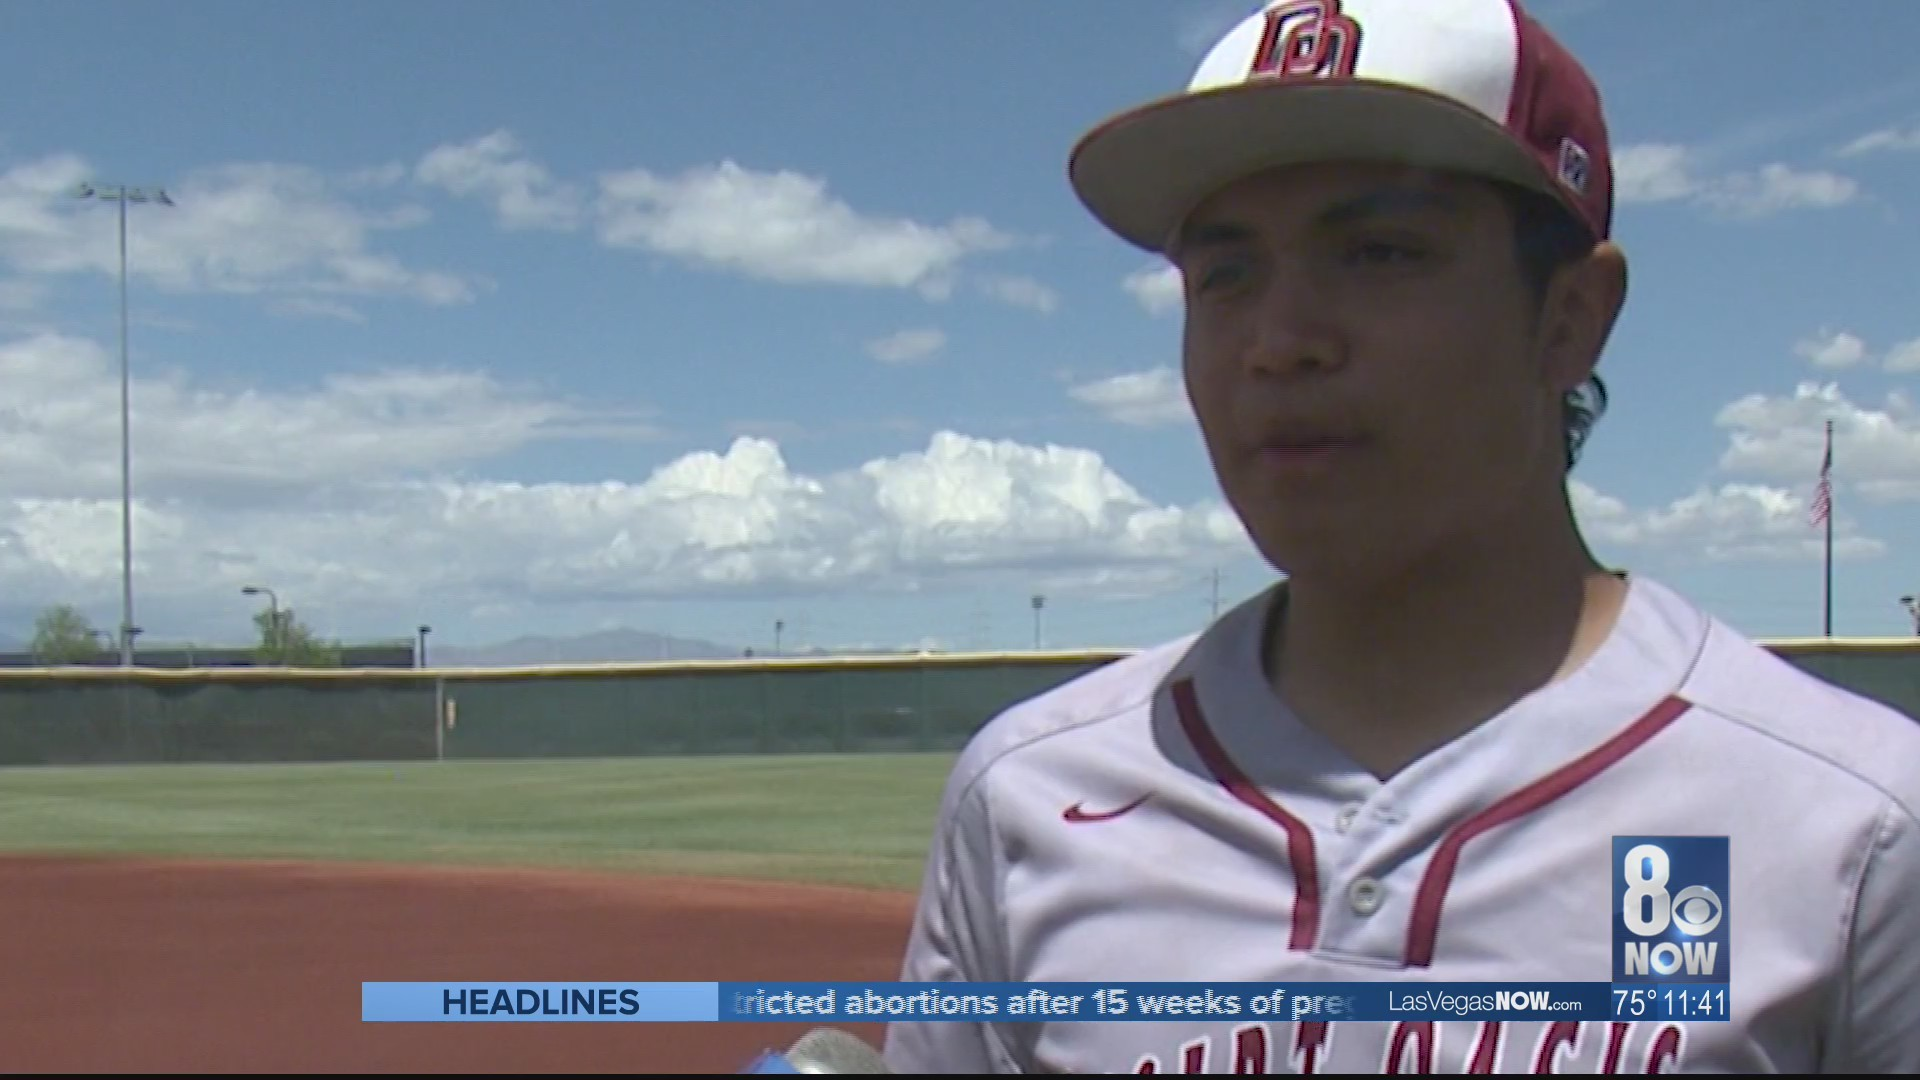 Hometown Hits looks at a local baseball player